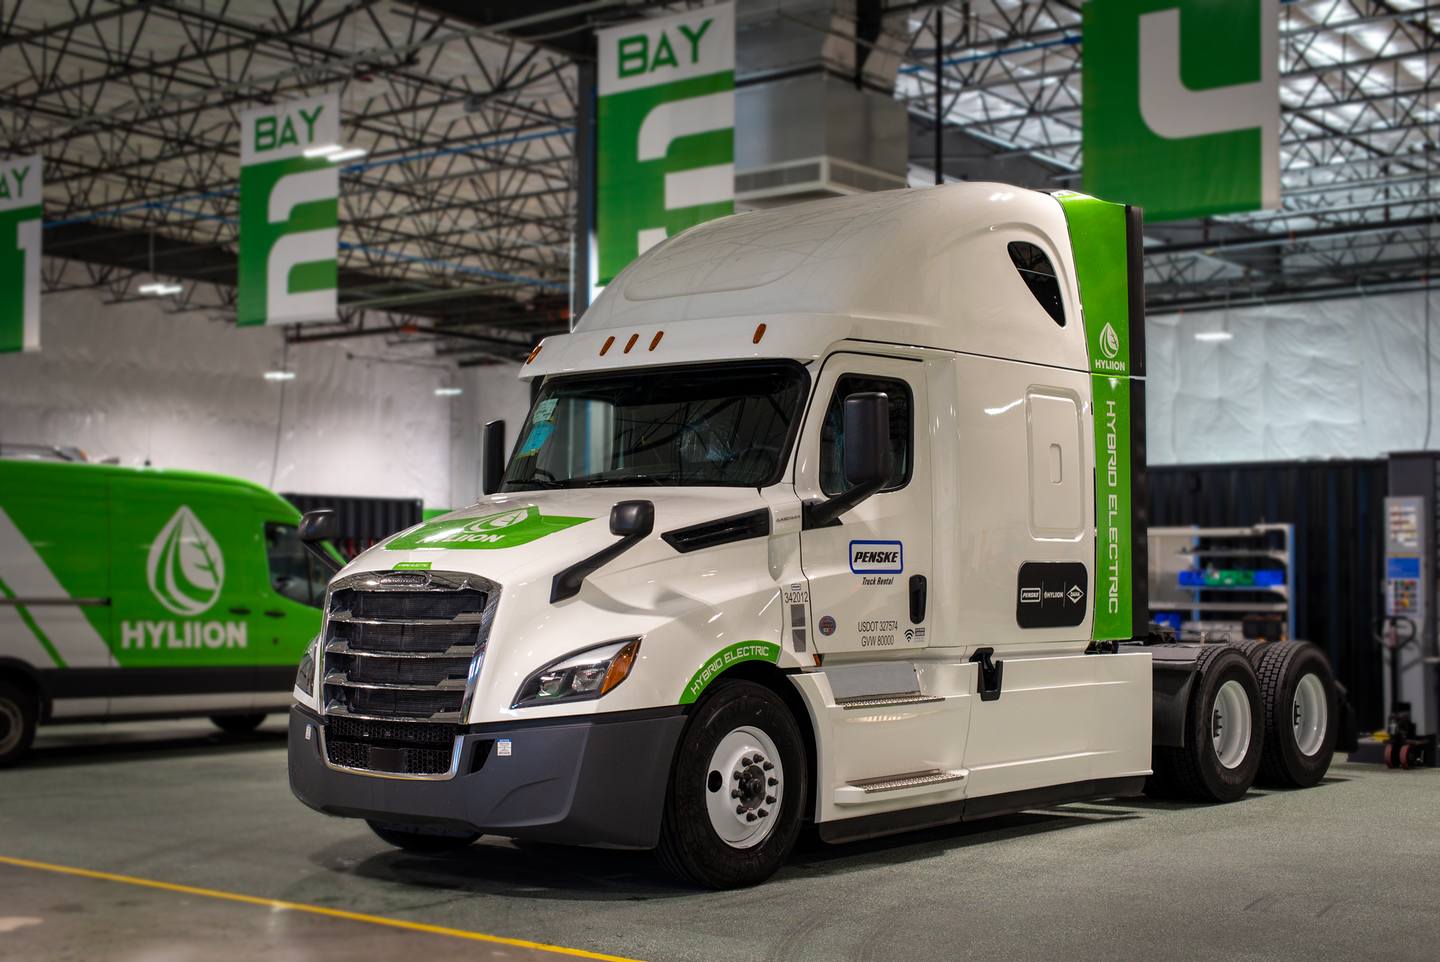 Penske has been an early adopter of the Hyliion Hybrid Diesel solution.